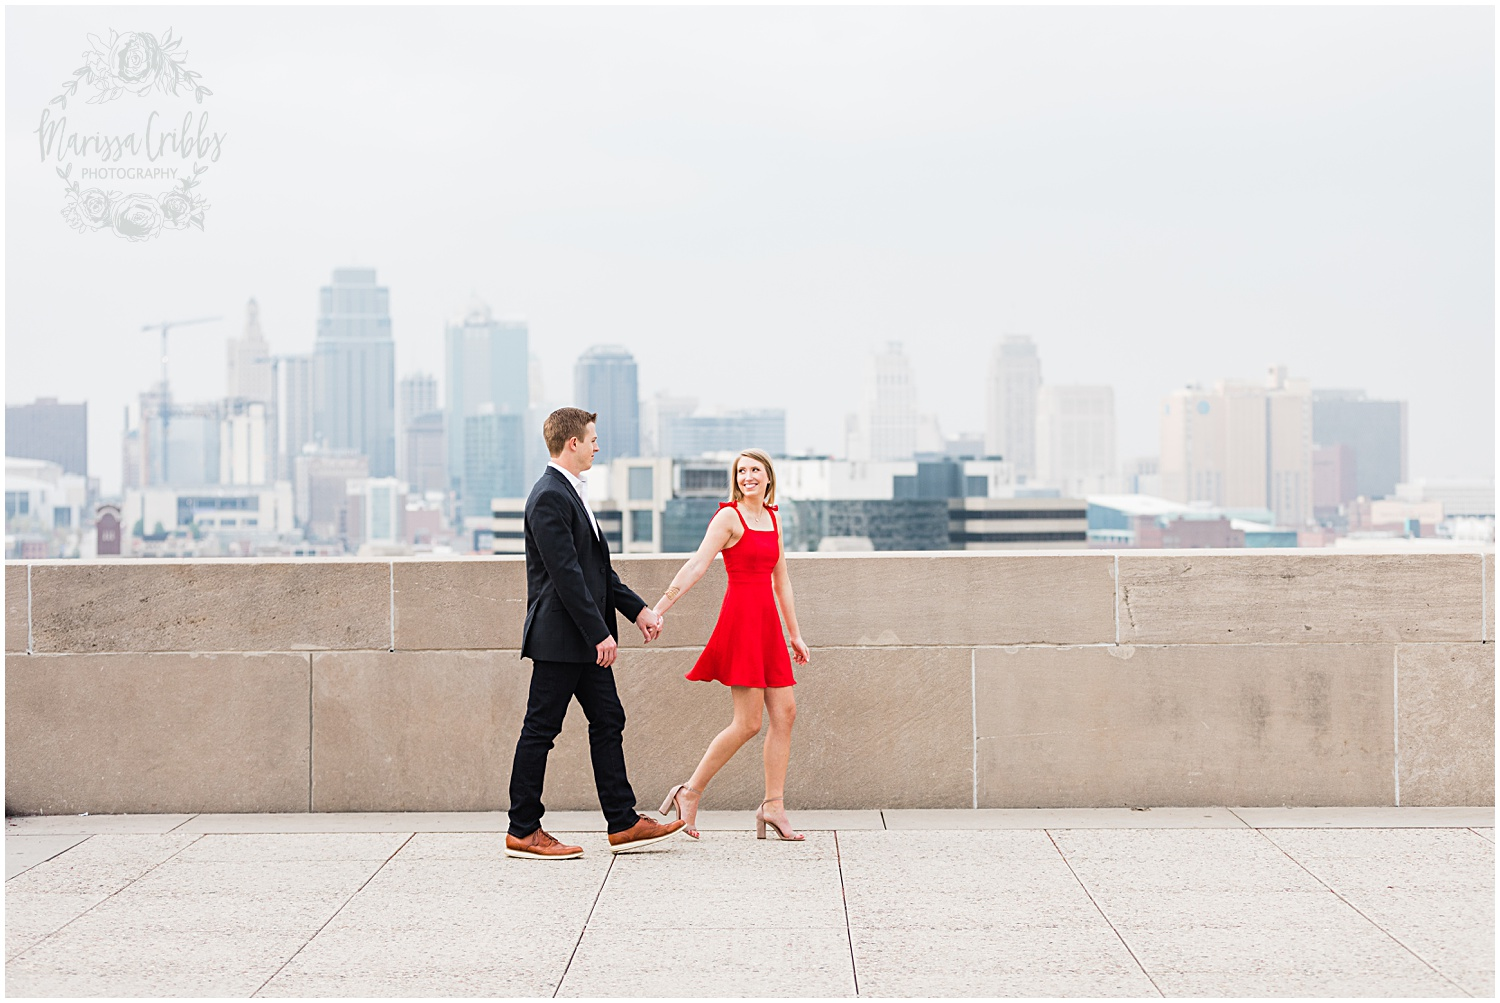 MADDY & KYLE ENGAGEMENT | MARISSA CRIBBS PHOTOGRAPHY_7623.jpg